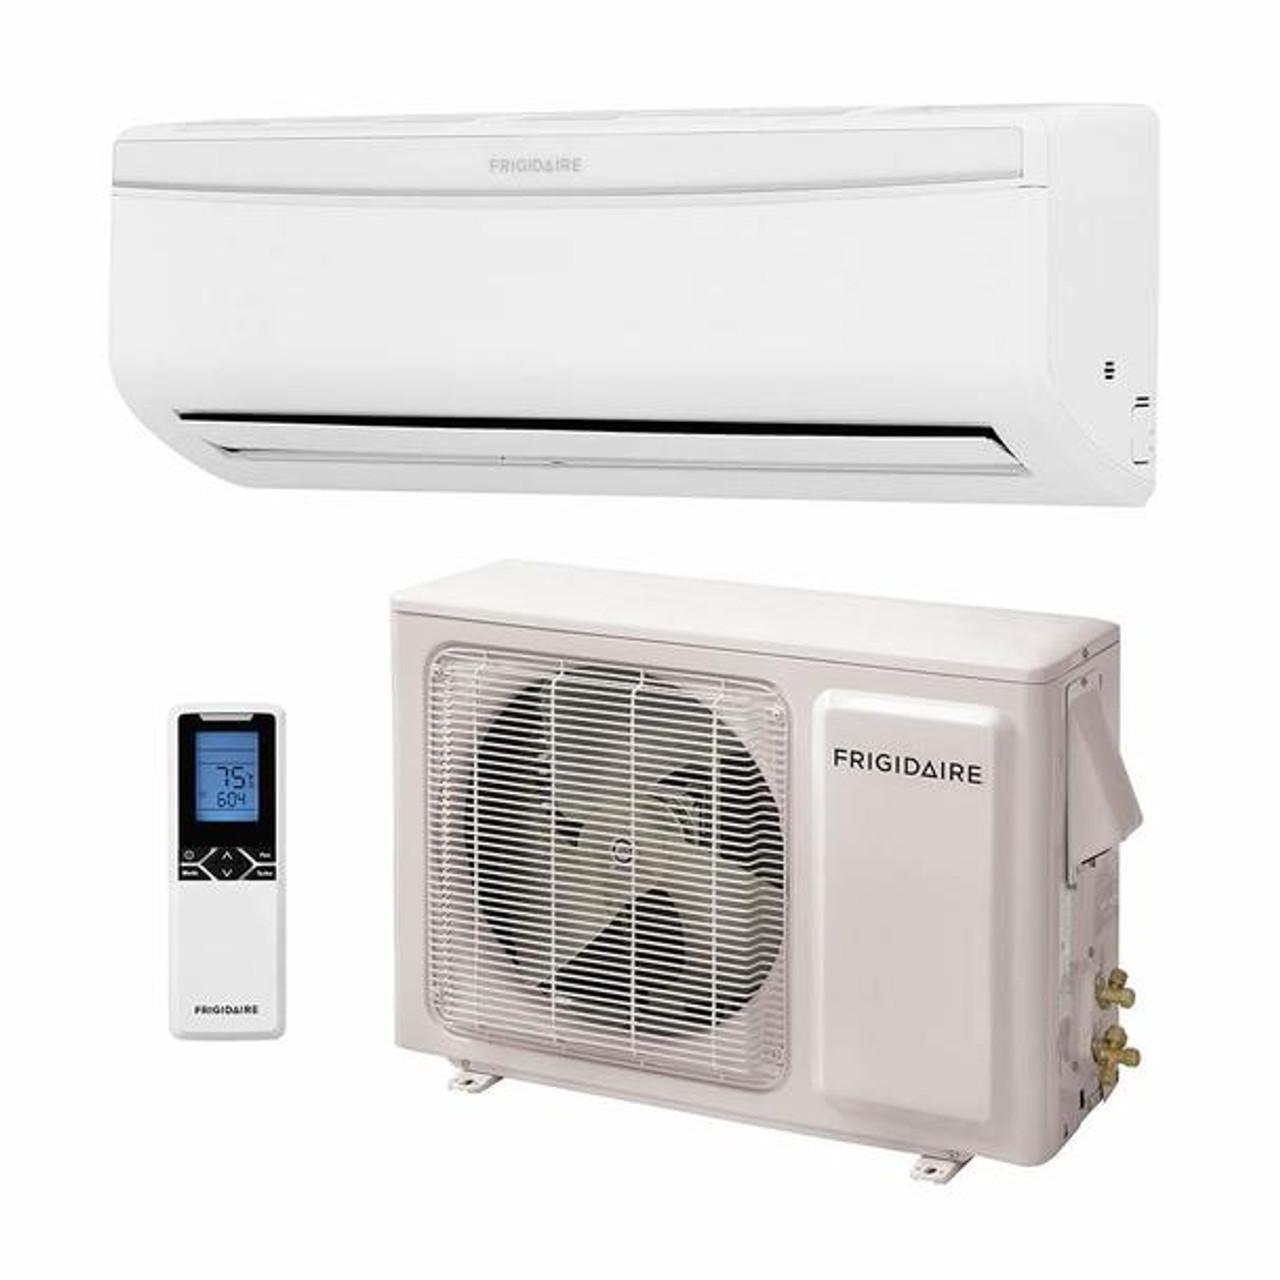 22000 Btu Frigidaire Ductless Split Air Conditioner With Heat Pump